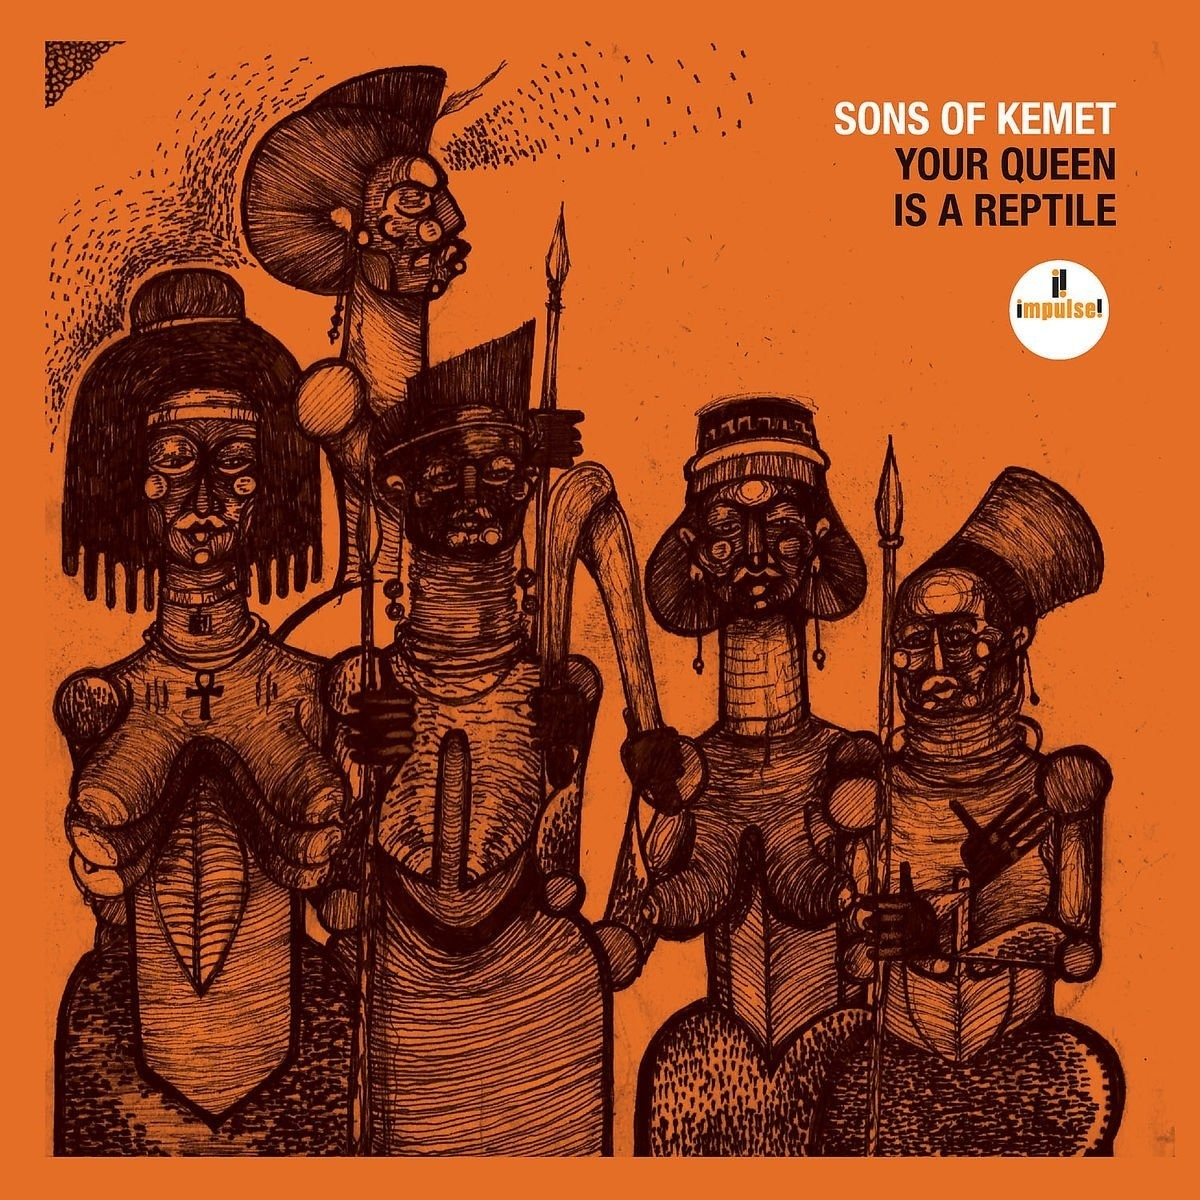 Sons of Kemet - i migliori album jazz 2018